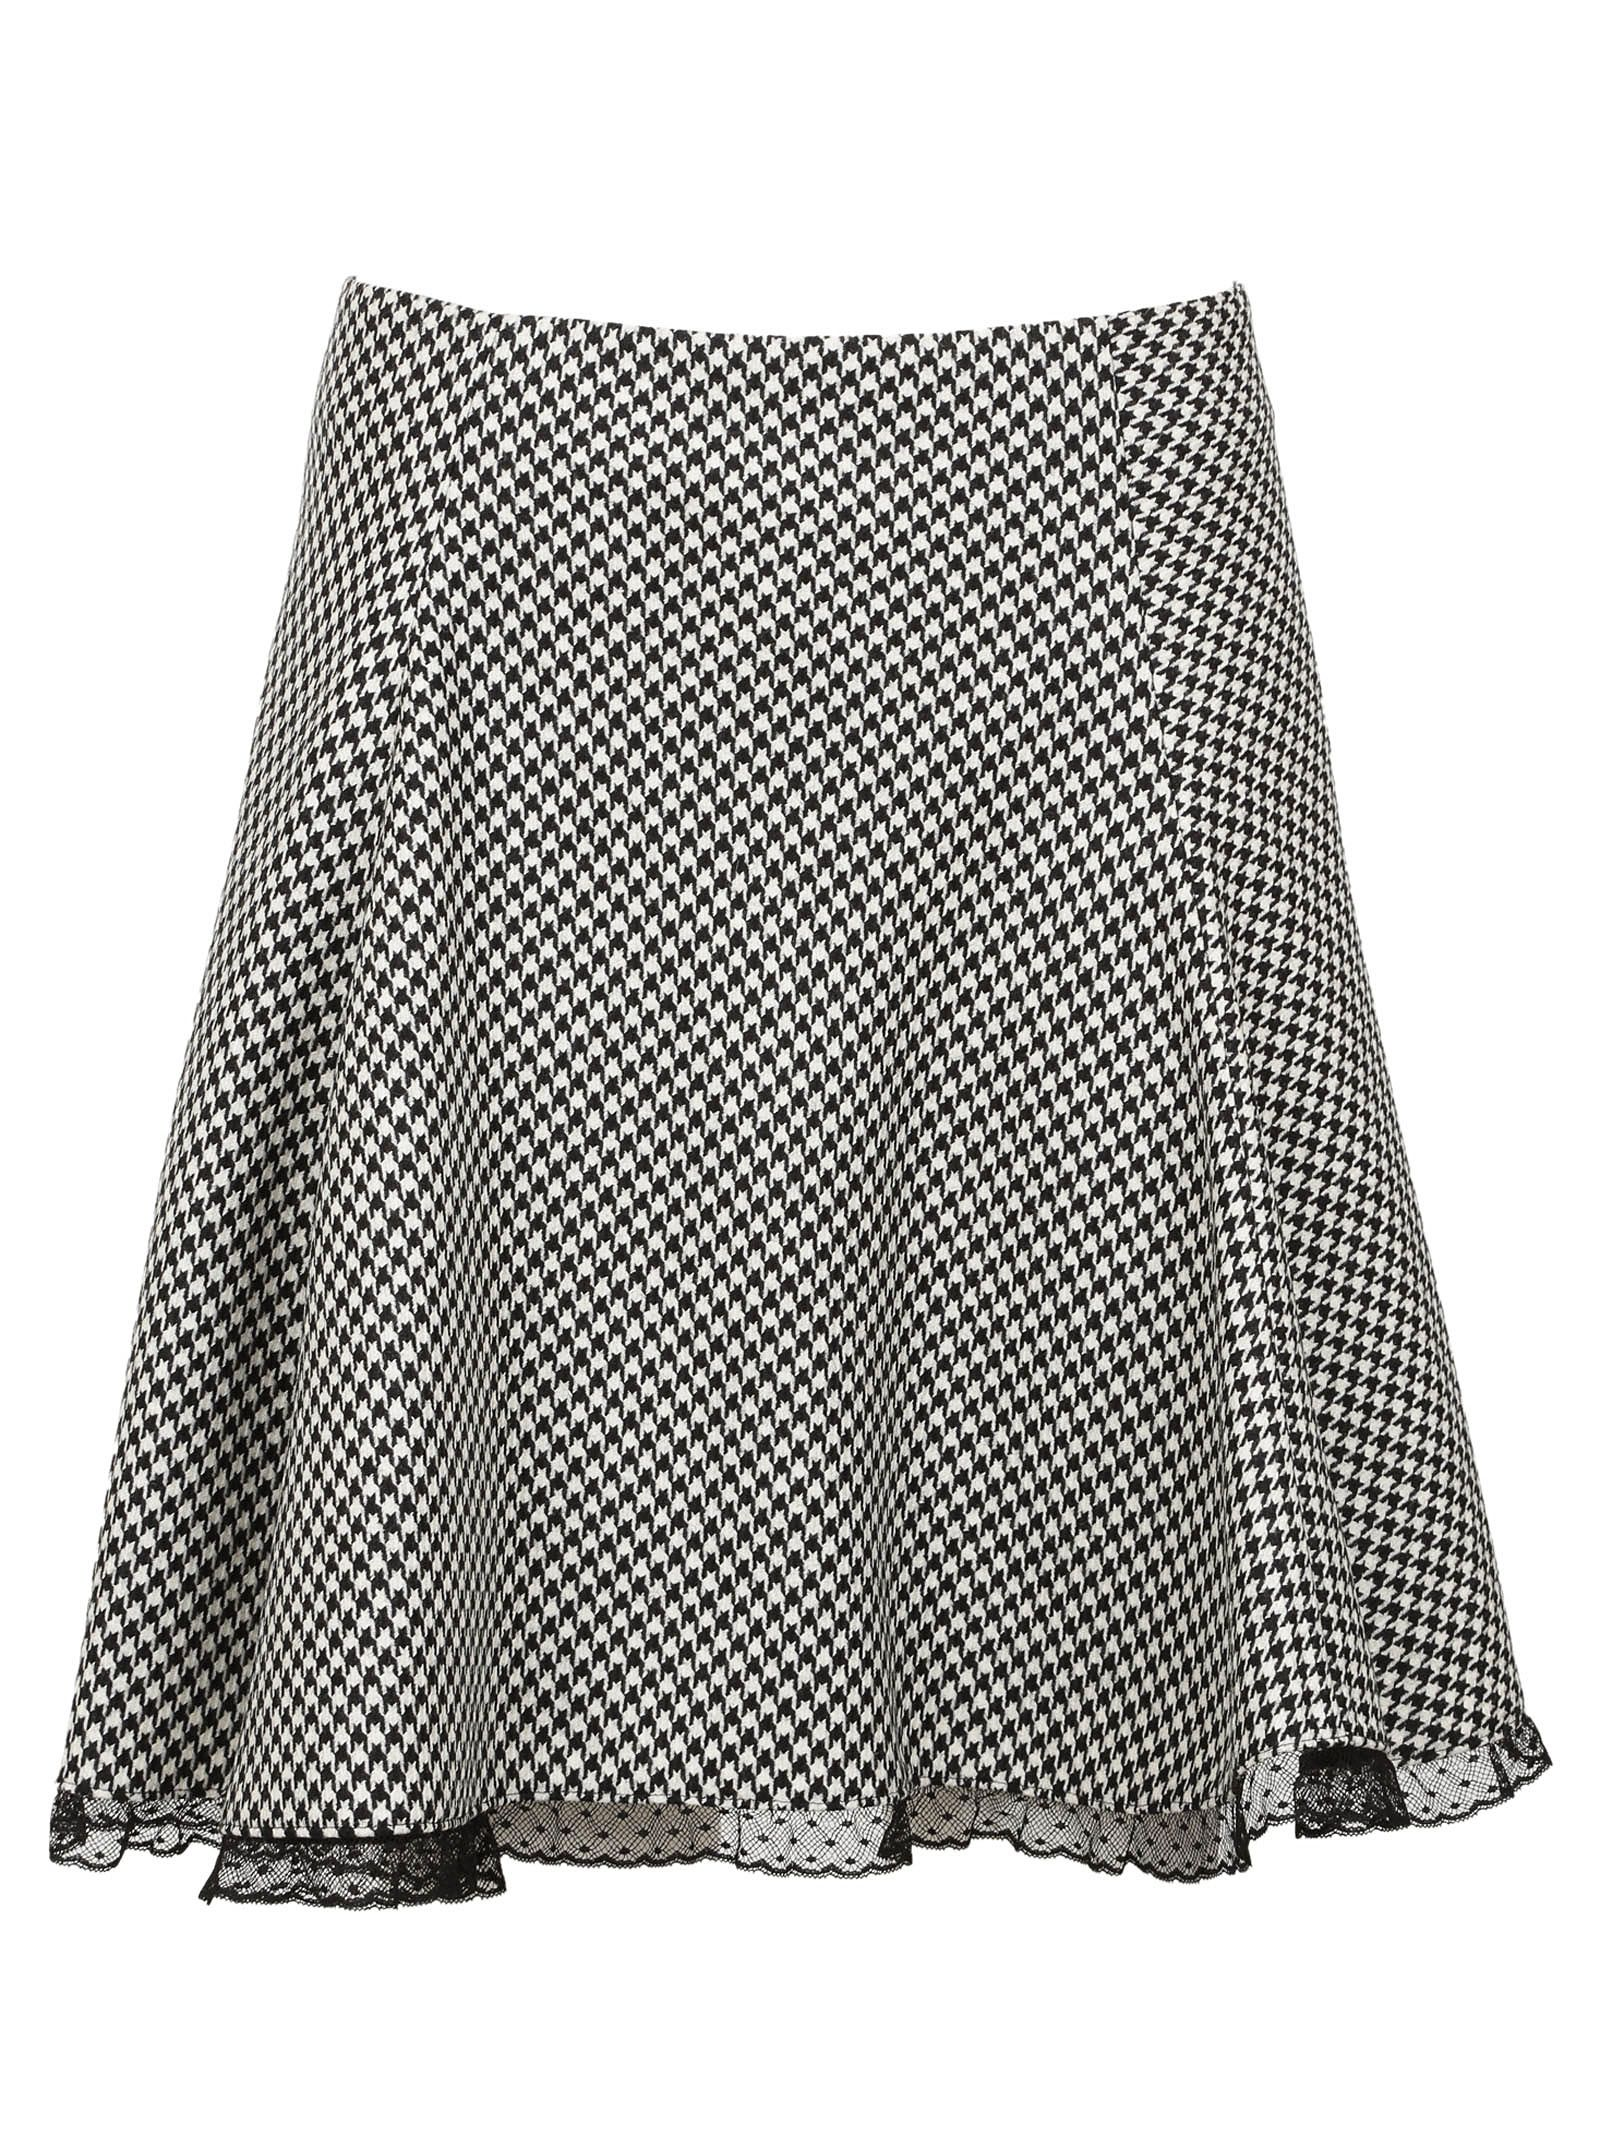 Red Valentino Houndstooth Skirt